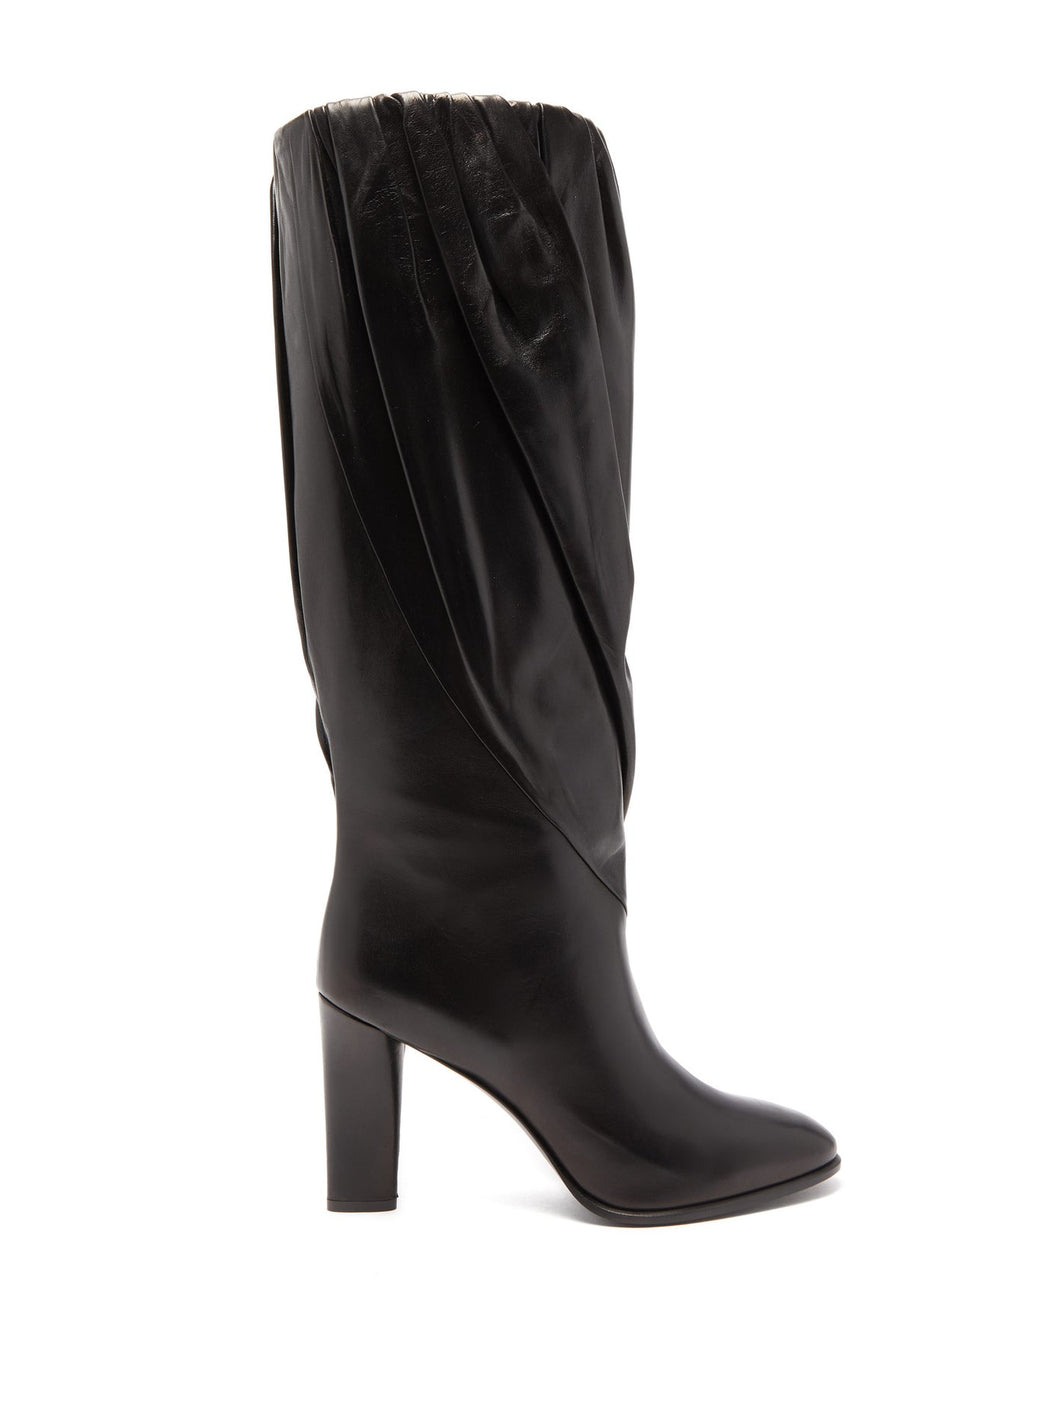 Gathered knee-high leather boots